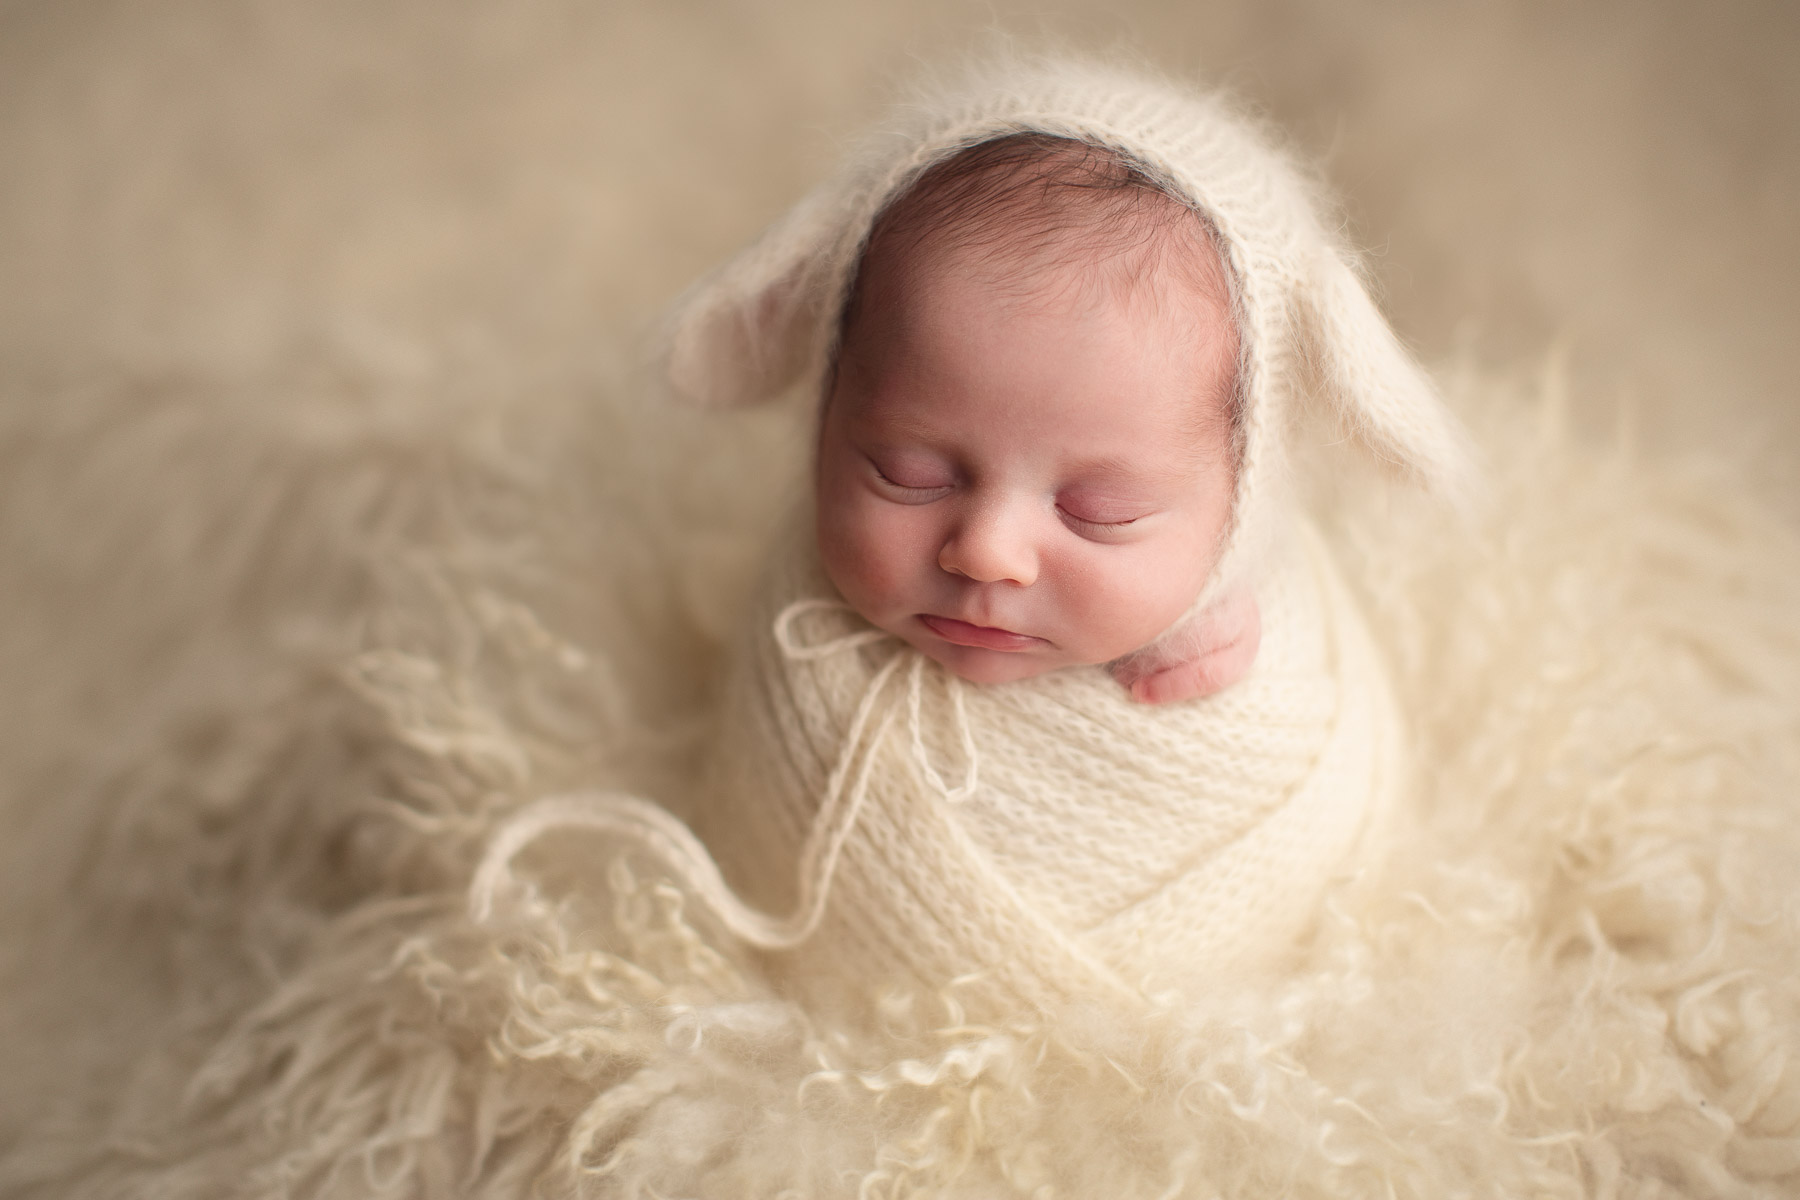 Affordable newborn photography package